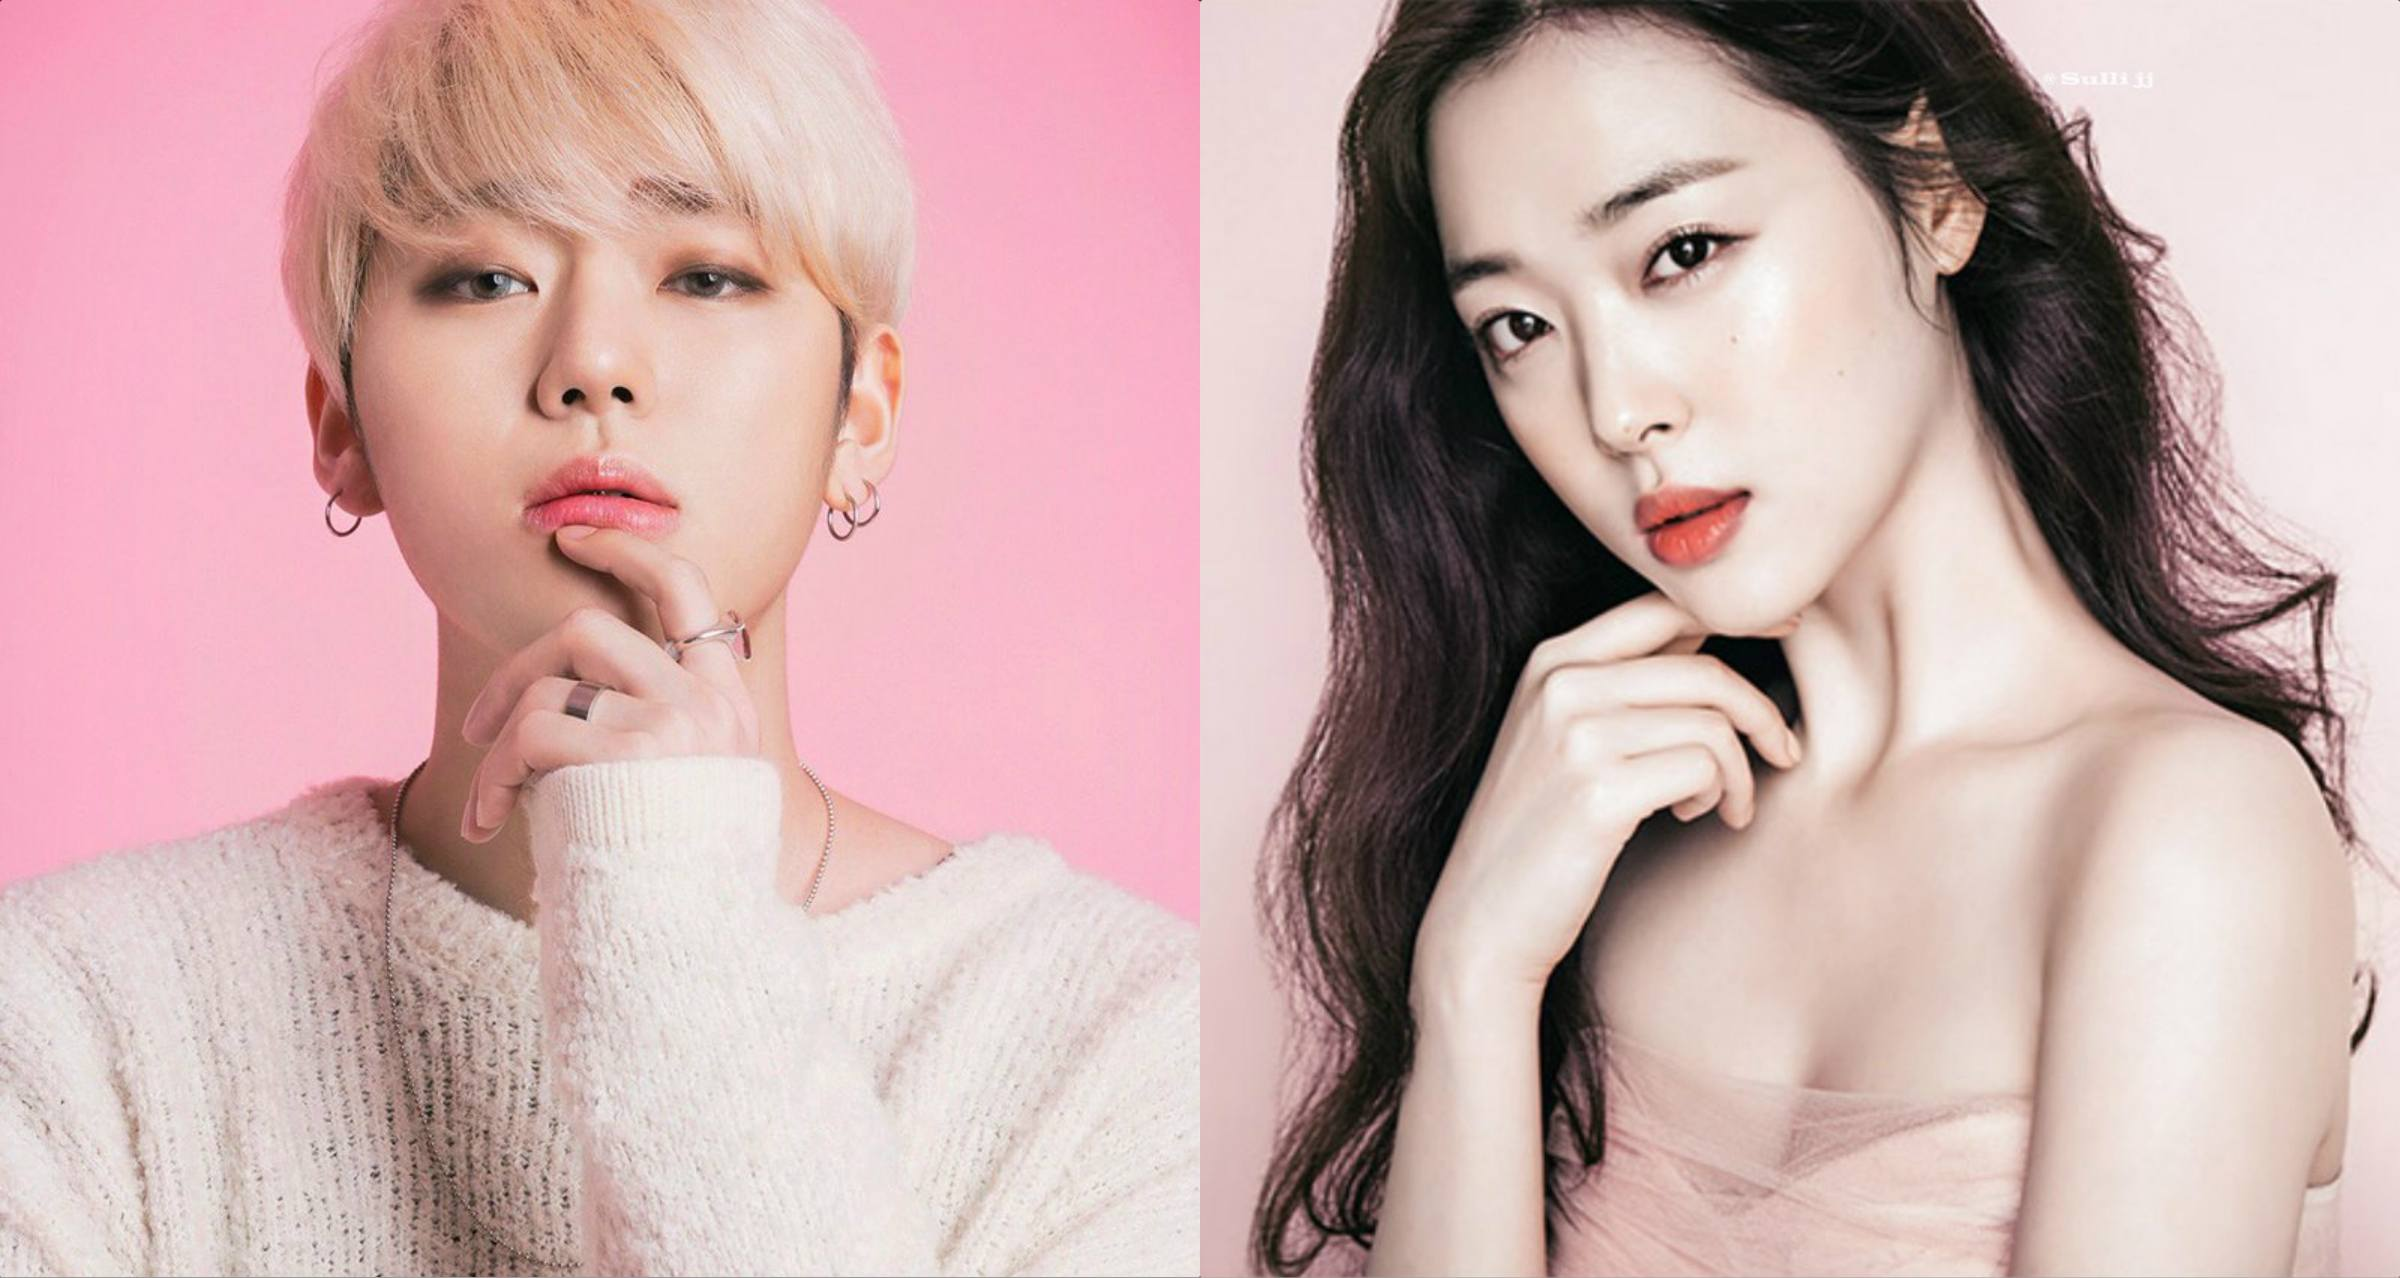 taemin and sulli rumored dating Taemin and sulli rumored dating is taemin really dating sulli from f(x) tt_tt - so i kinda came across this news from october last year (i know its a little late) and it said that t question.